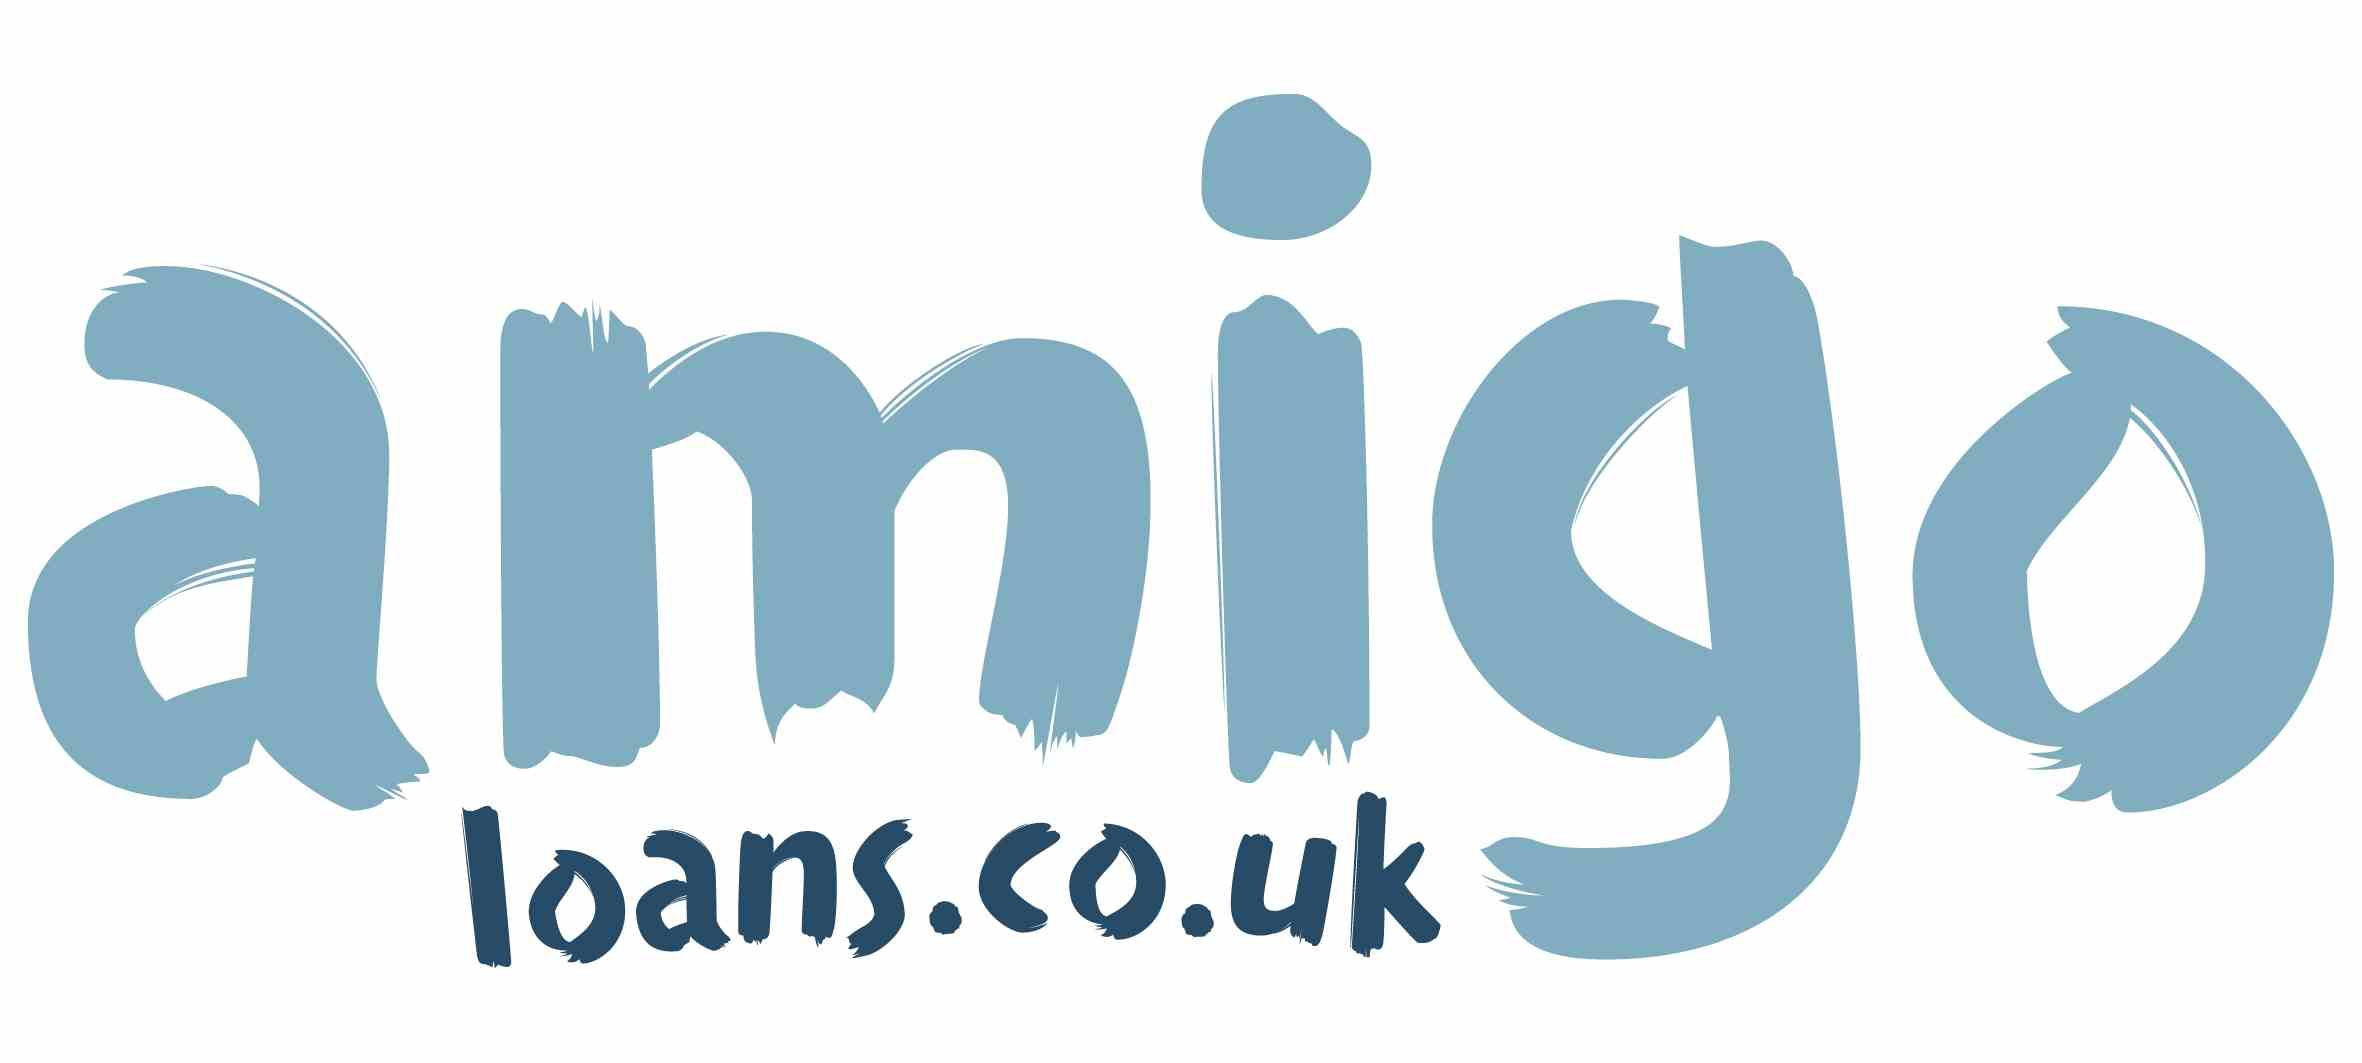 No Credit Check Credit Cards >> Amigo Loans @ www.amigoloans.co.uk - Credit Cards and Loans for Bad Credit. - Send Me Dosh